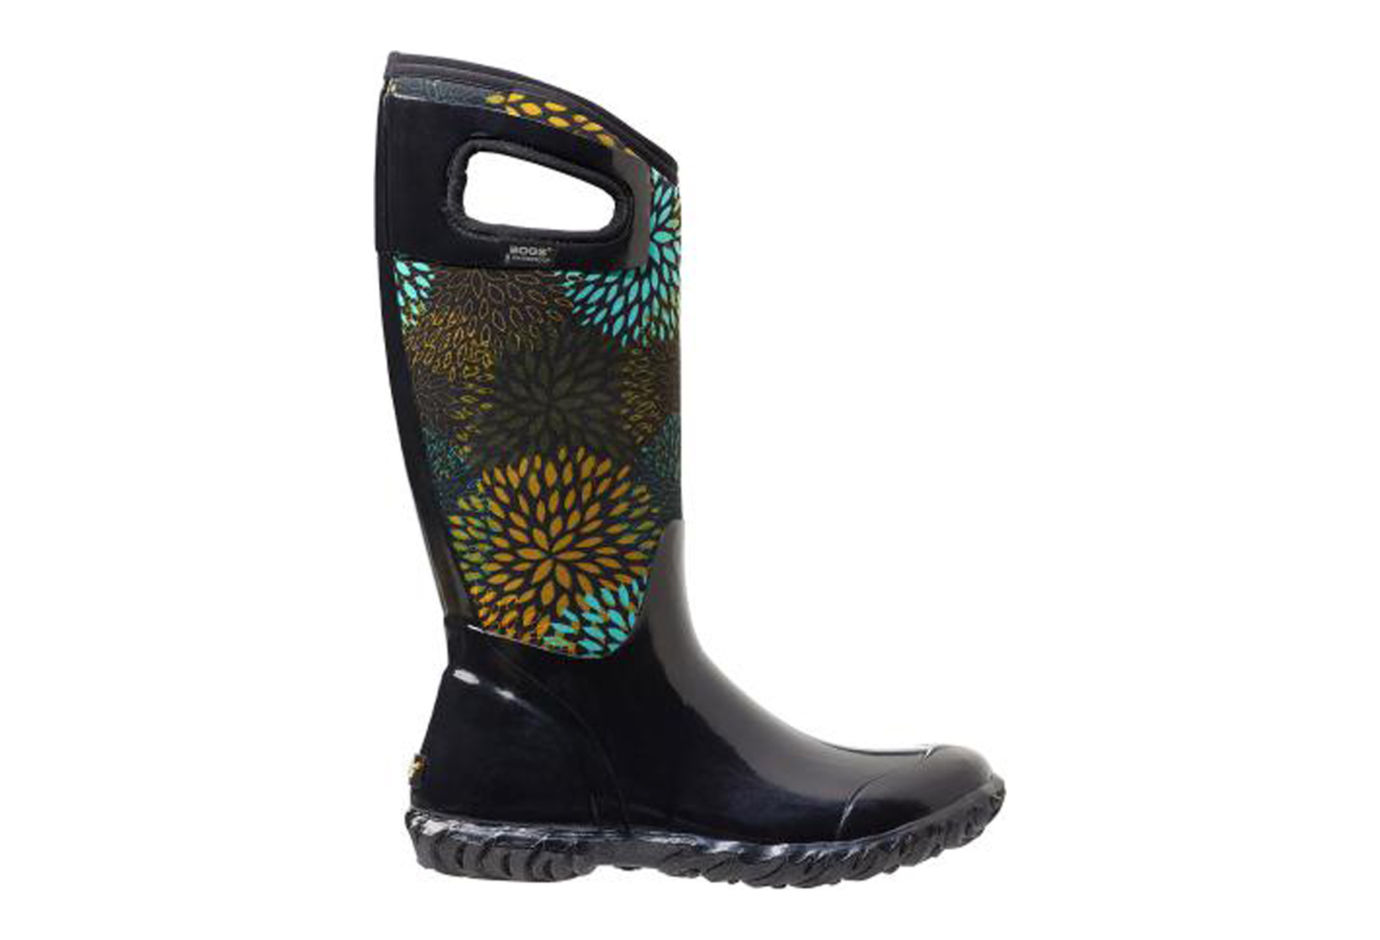 Cool BOGS Women39s Rain Boots Black Free Shipping At 49